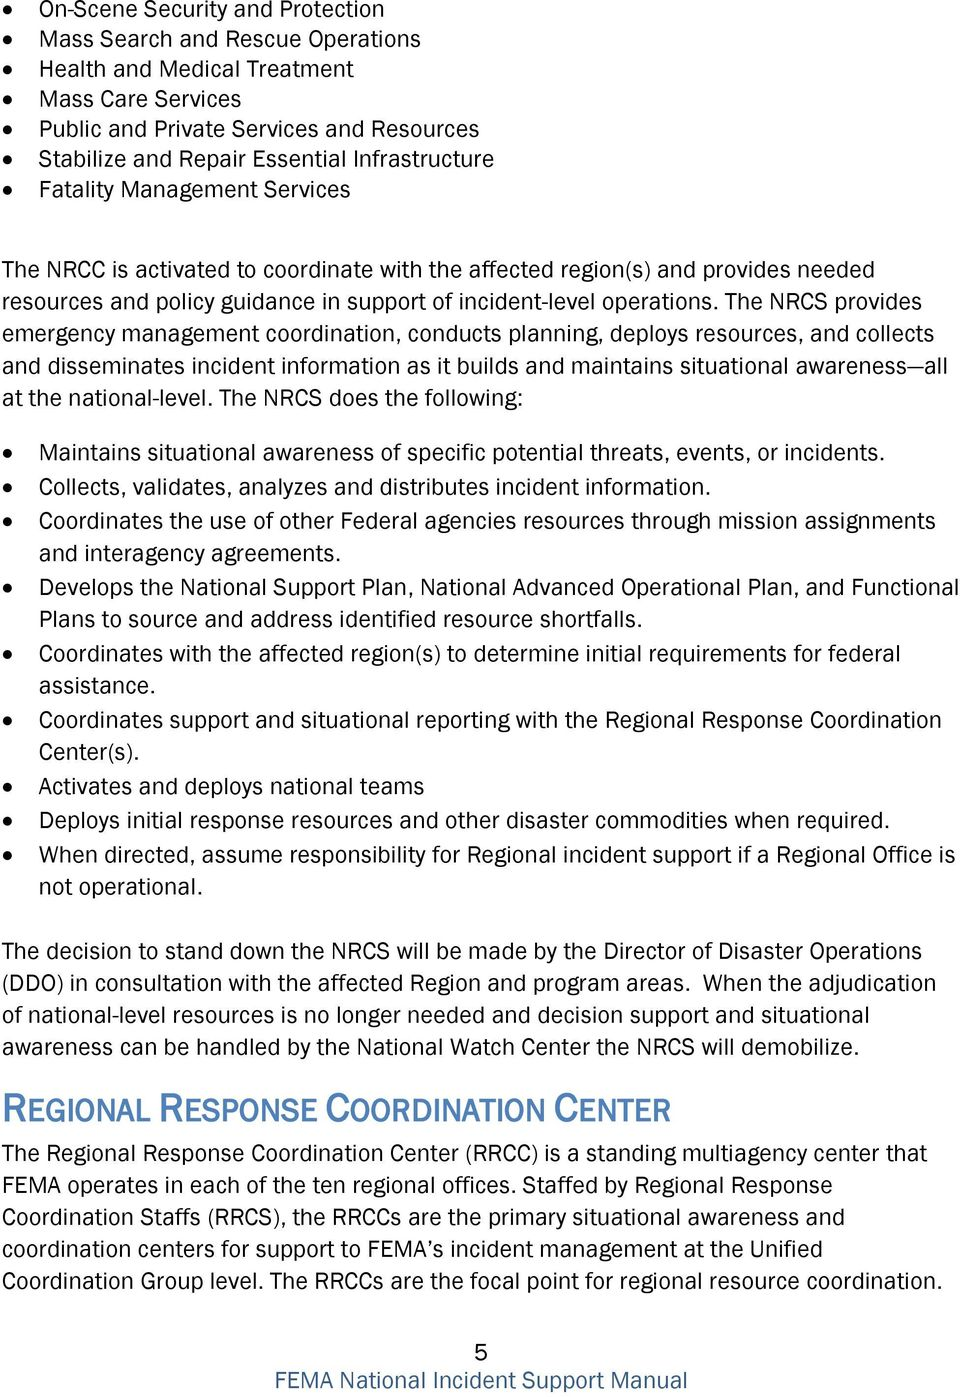 The NRCS provides emergency management coordination, conducts planning, deploys resources, and collects and disseminates incident information as it builds and maintains situational awareness all at